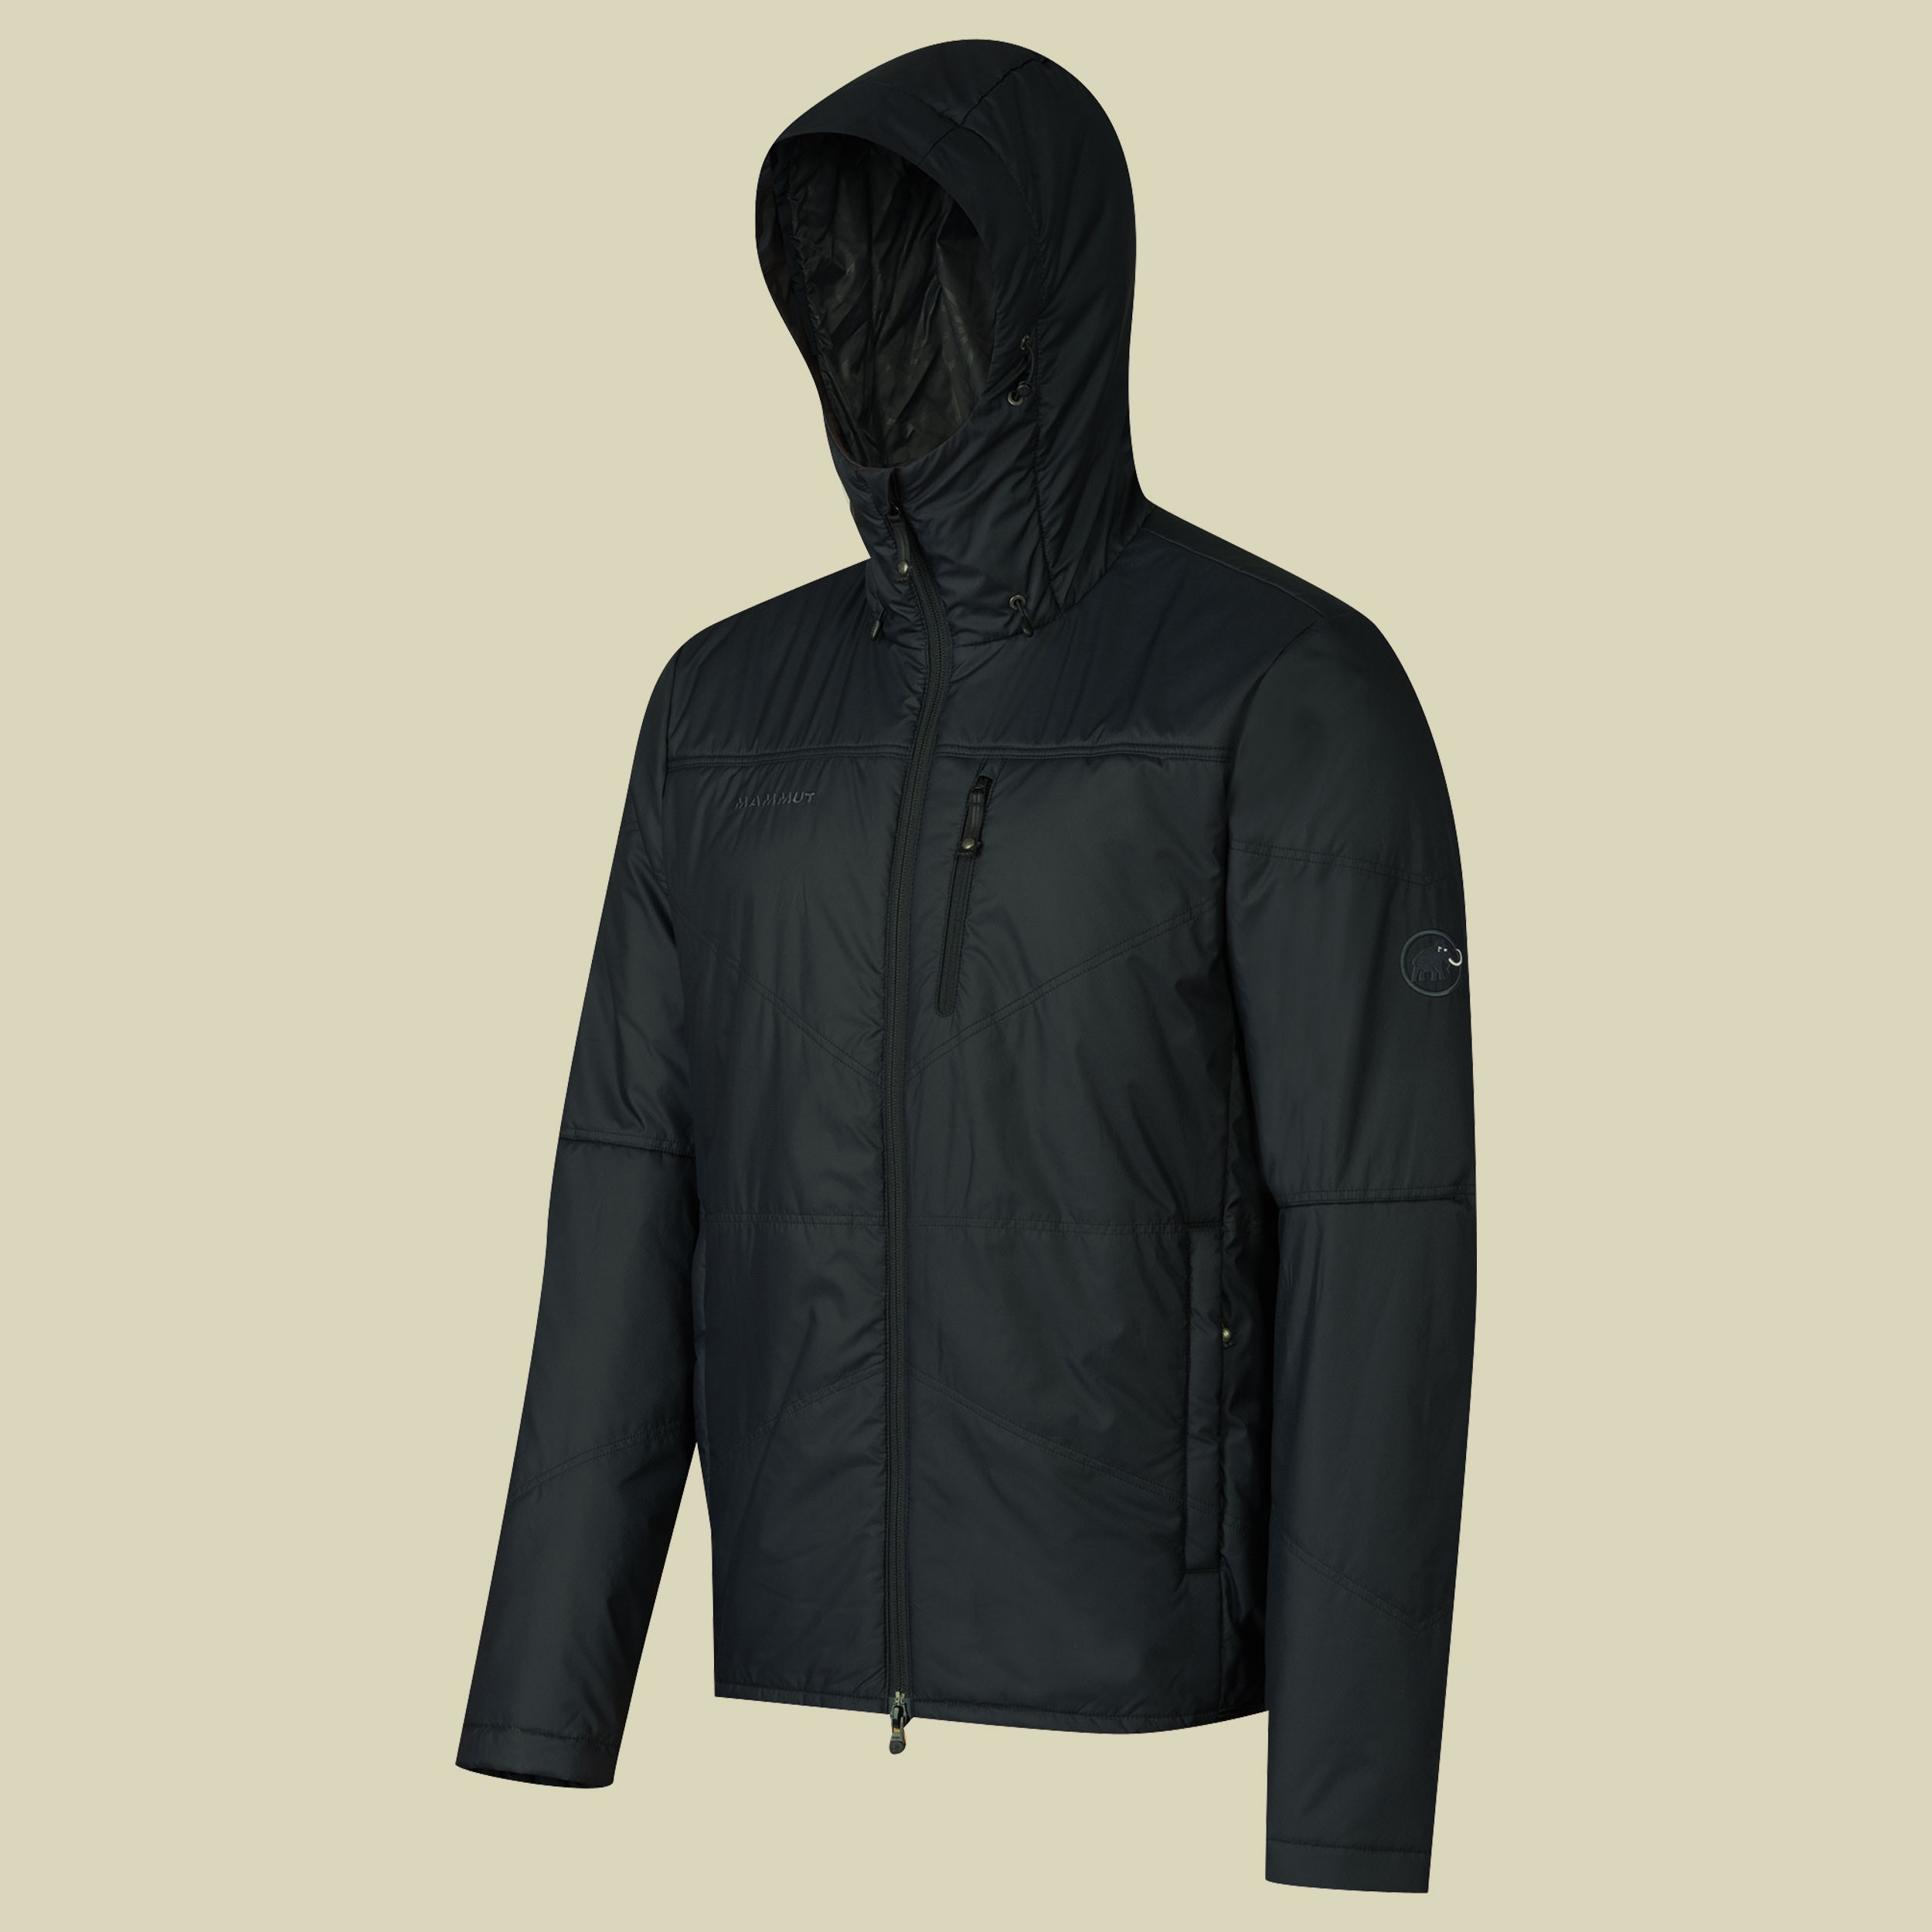 Runbold IN Hooded Jacket Men